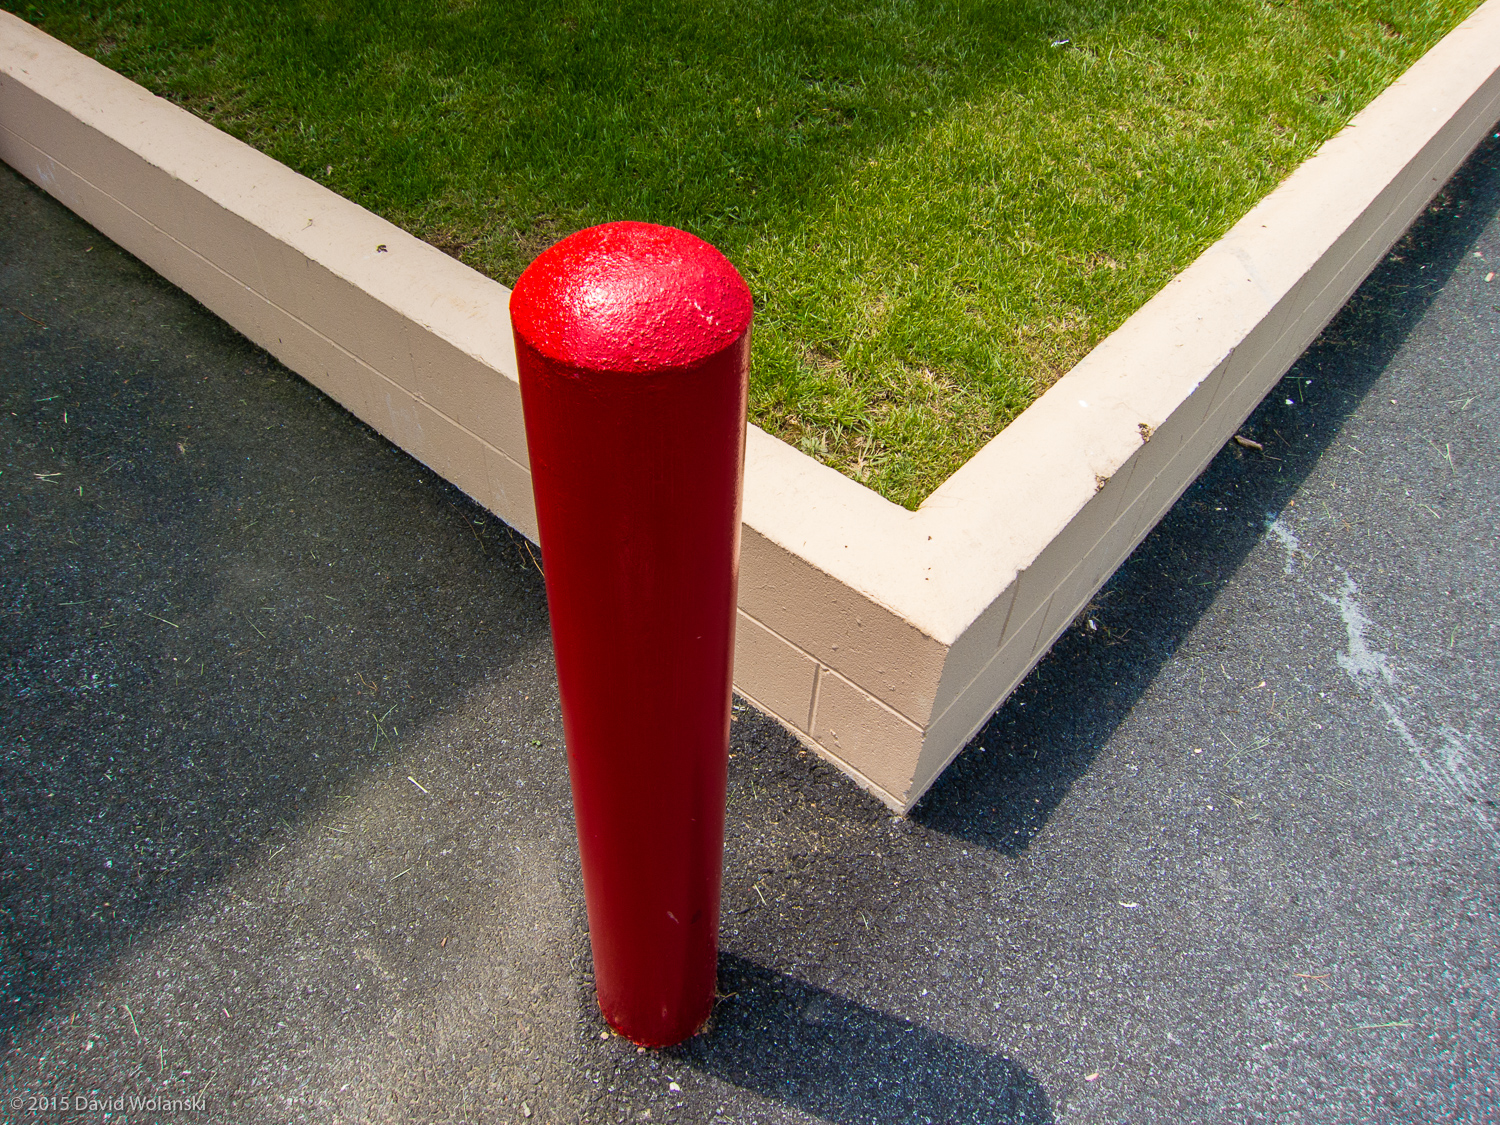 Red Post, Green Grass and Black Pavement